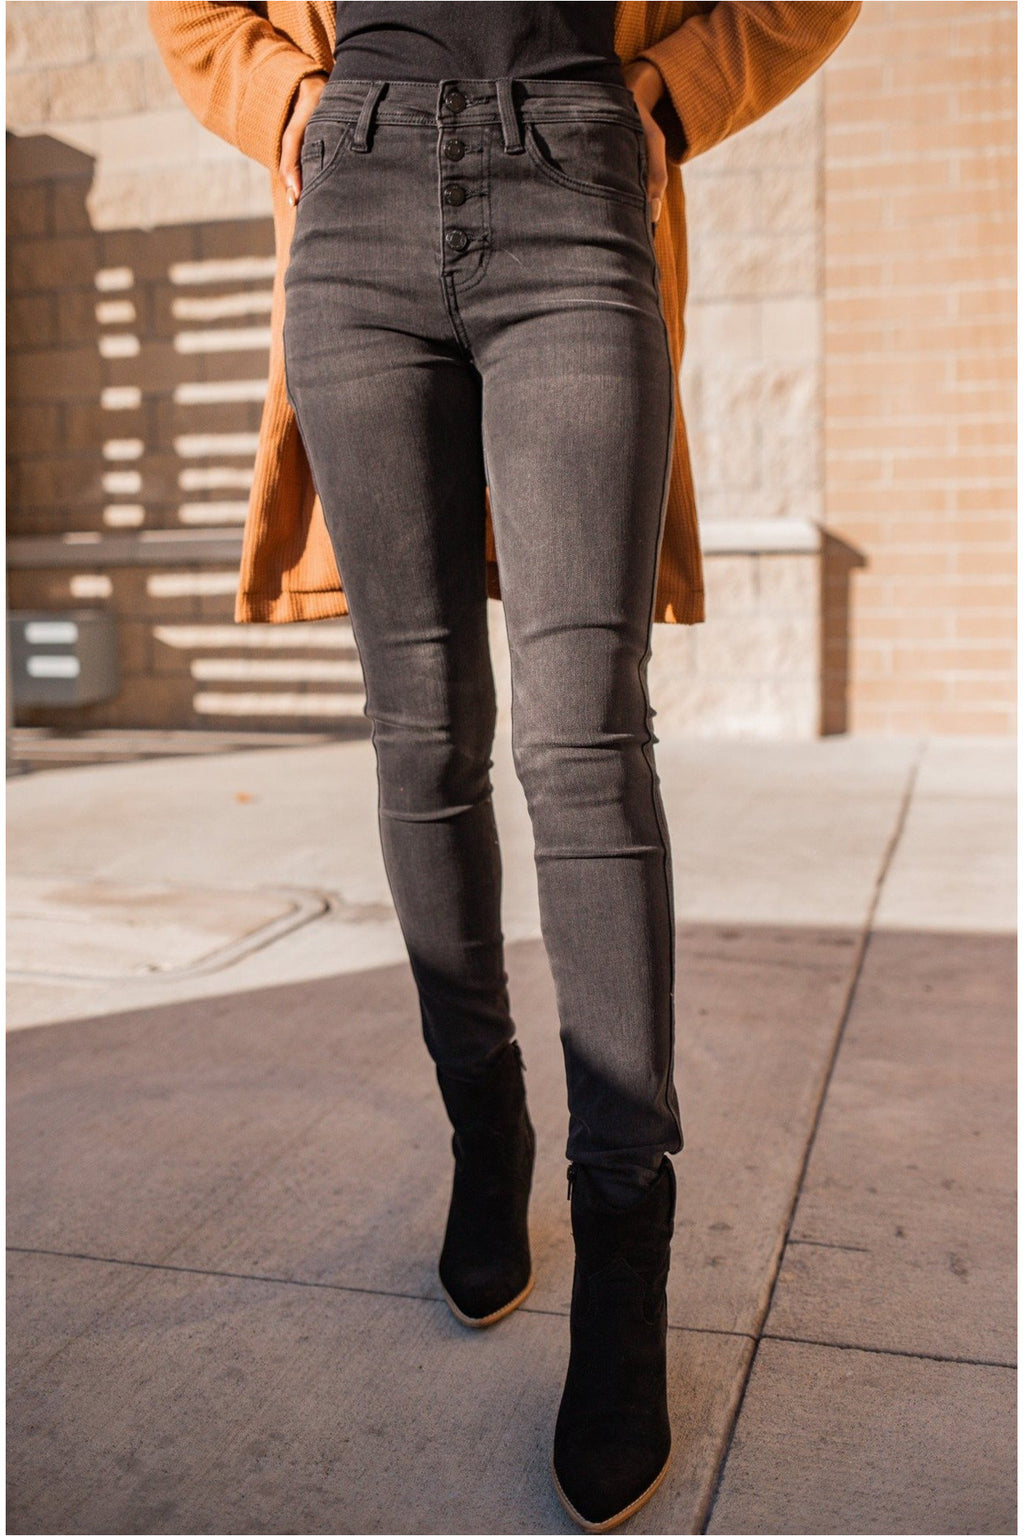 Love Bug Black High Waisted Button Fly Skinny Jeans - BluePeppermint Boutique